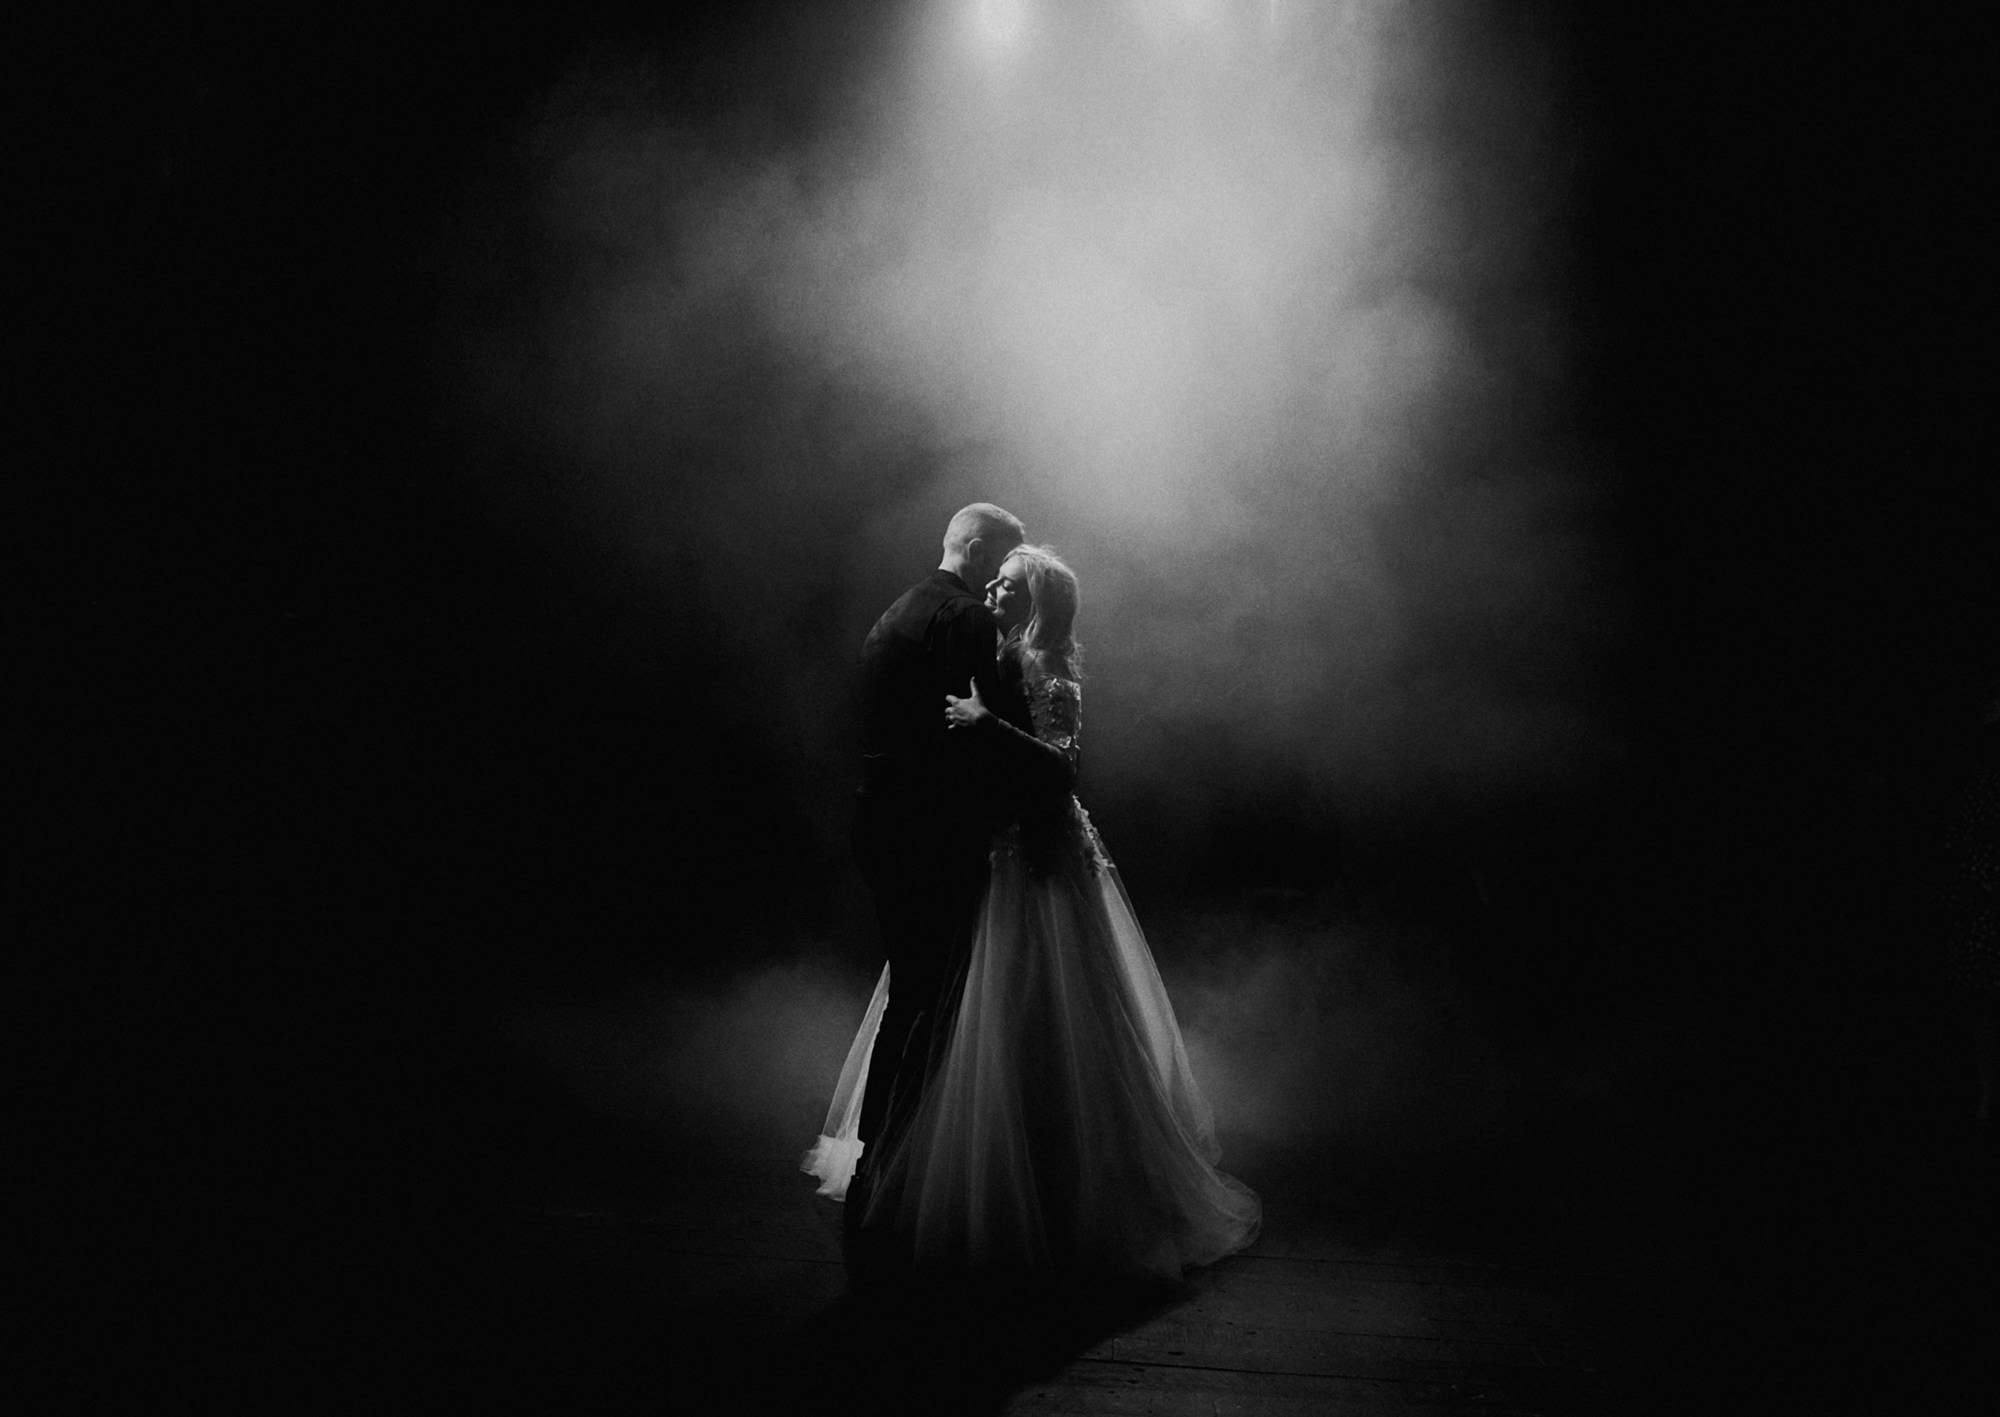 Bride and groom dancing on smokey dance floor - photo by Dan O'Day